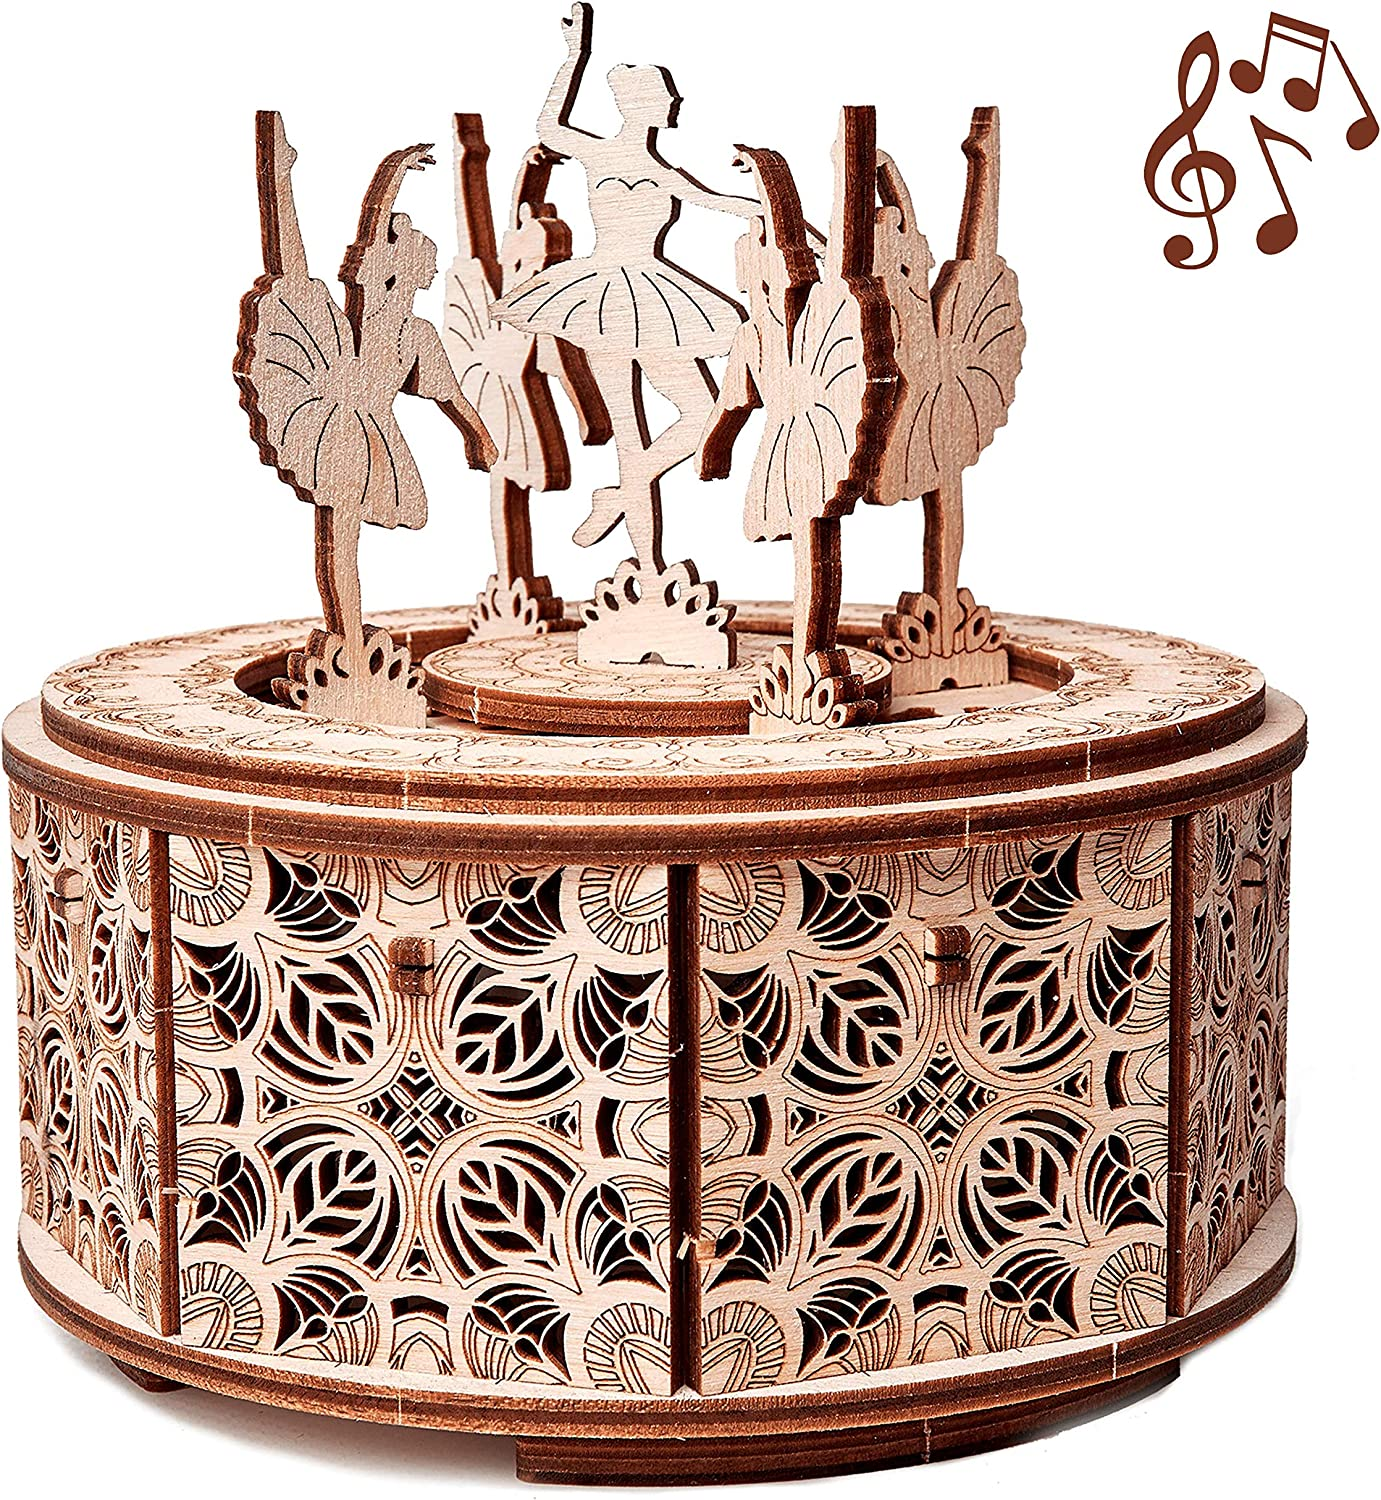 Wood Trick Dancing Ballerina Music Box Kit Swan Lake Diy Wooden Musical Box Ballerina 3d Wooden Puzzle Assembly Toy Brain Teaser For Adults And Kids Toys Games